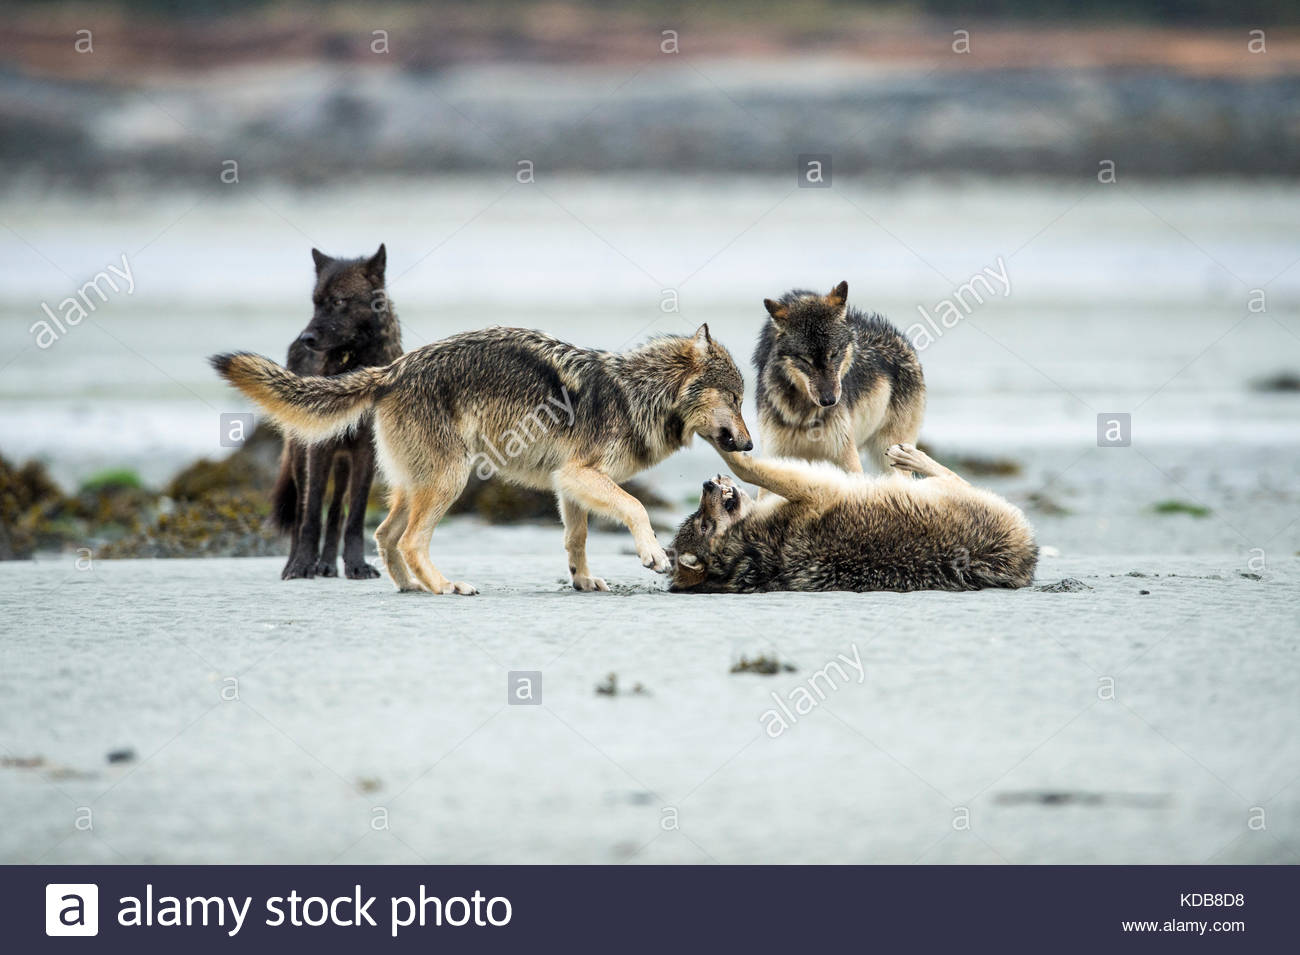 Four wolves, Canis lupus, playflighting on a beach. Stock Photo